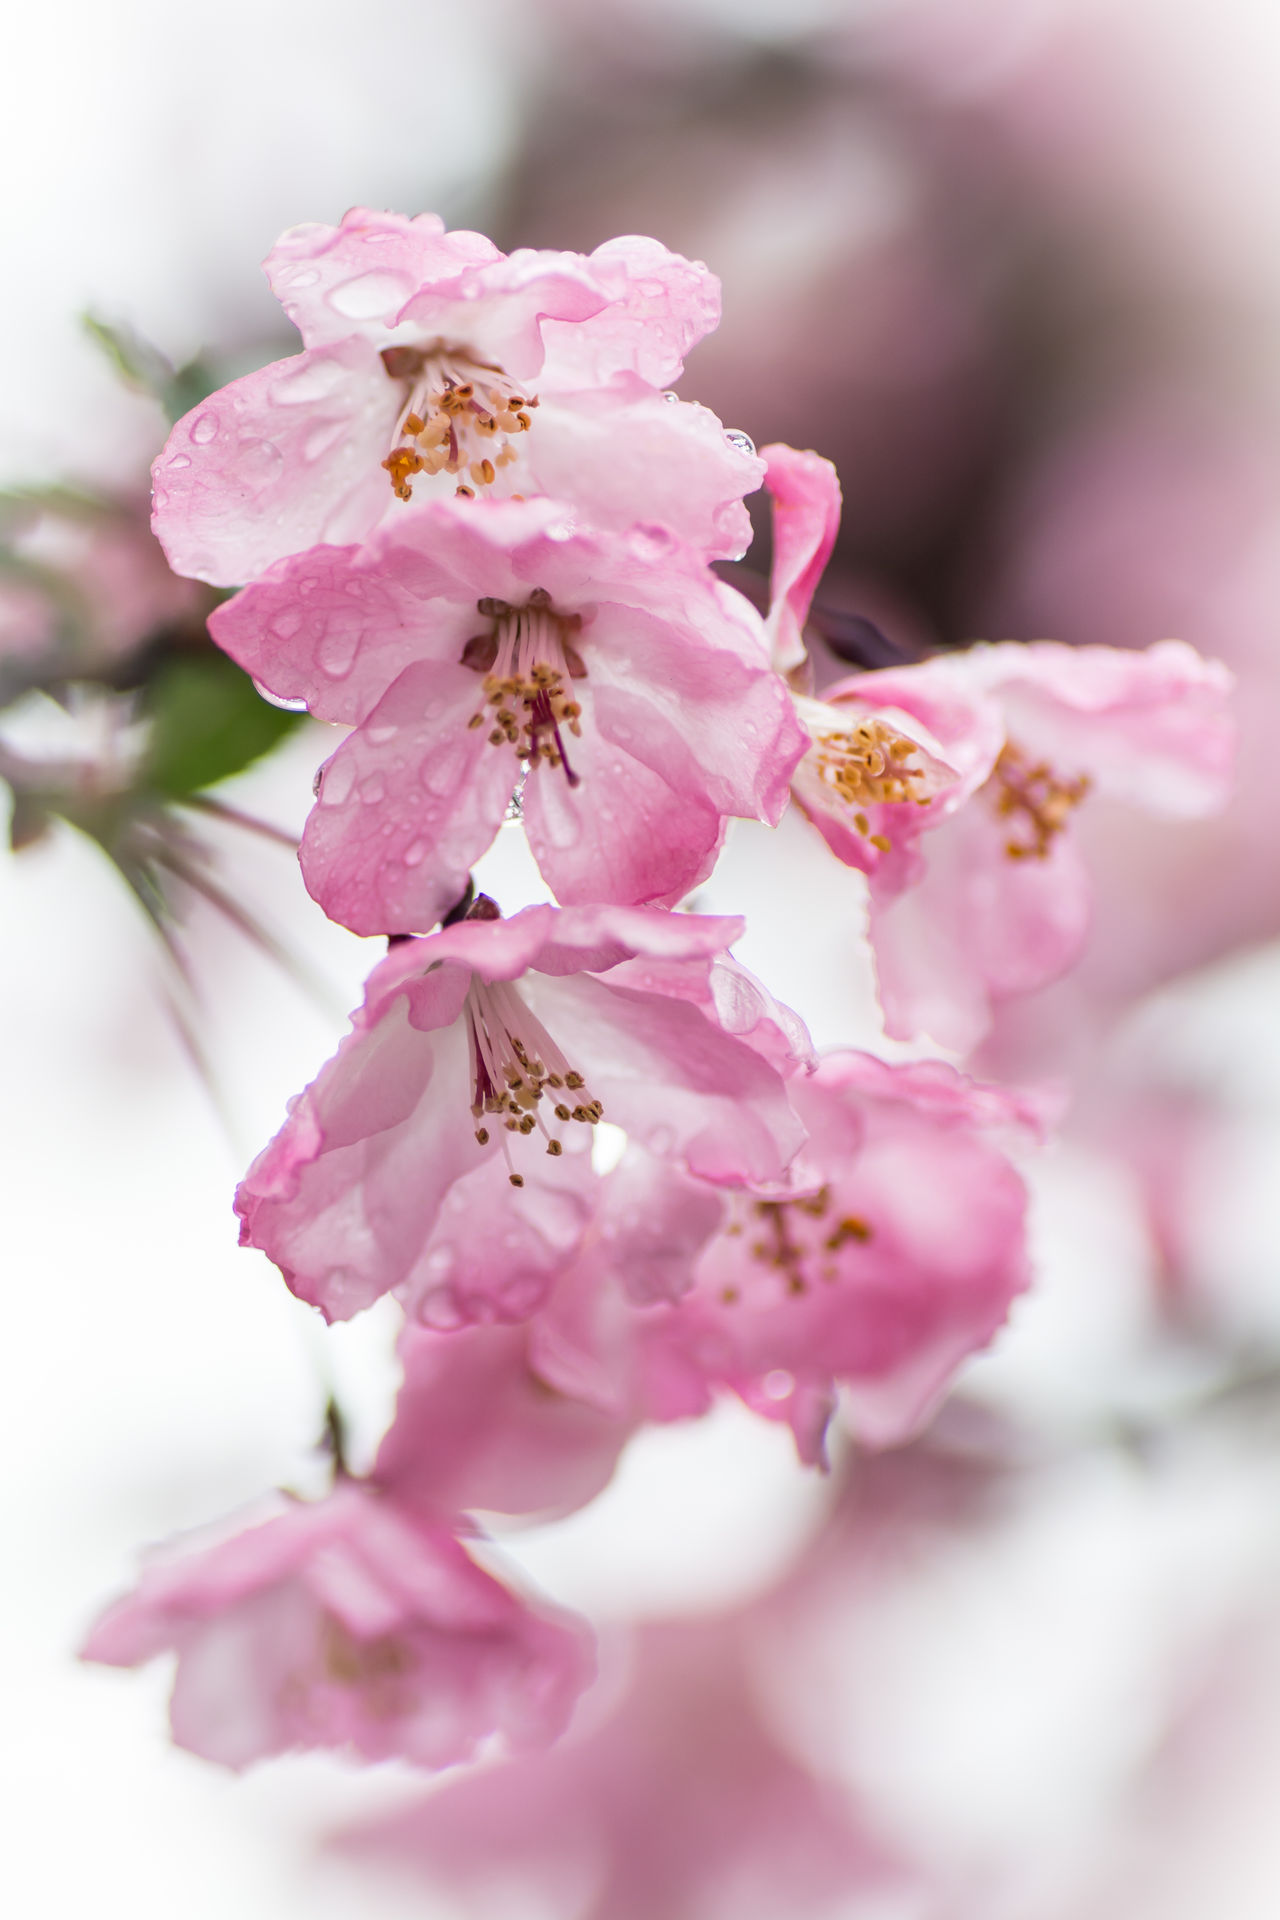 Asakusa Blossoms. Rainy but beautiful day around Sensō-ji Temple. Asakusa, Tokyo, Japan. Nikon D7100 | 90mm | 1/400 sec | f/4 | iso 100 Wanderlust Urban Exploration Blossom Flower Spring